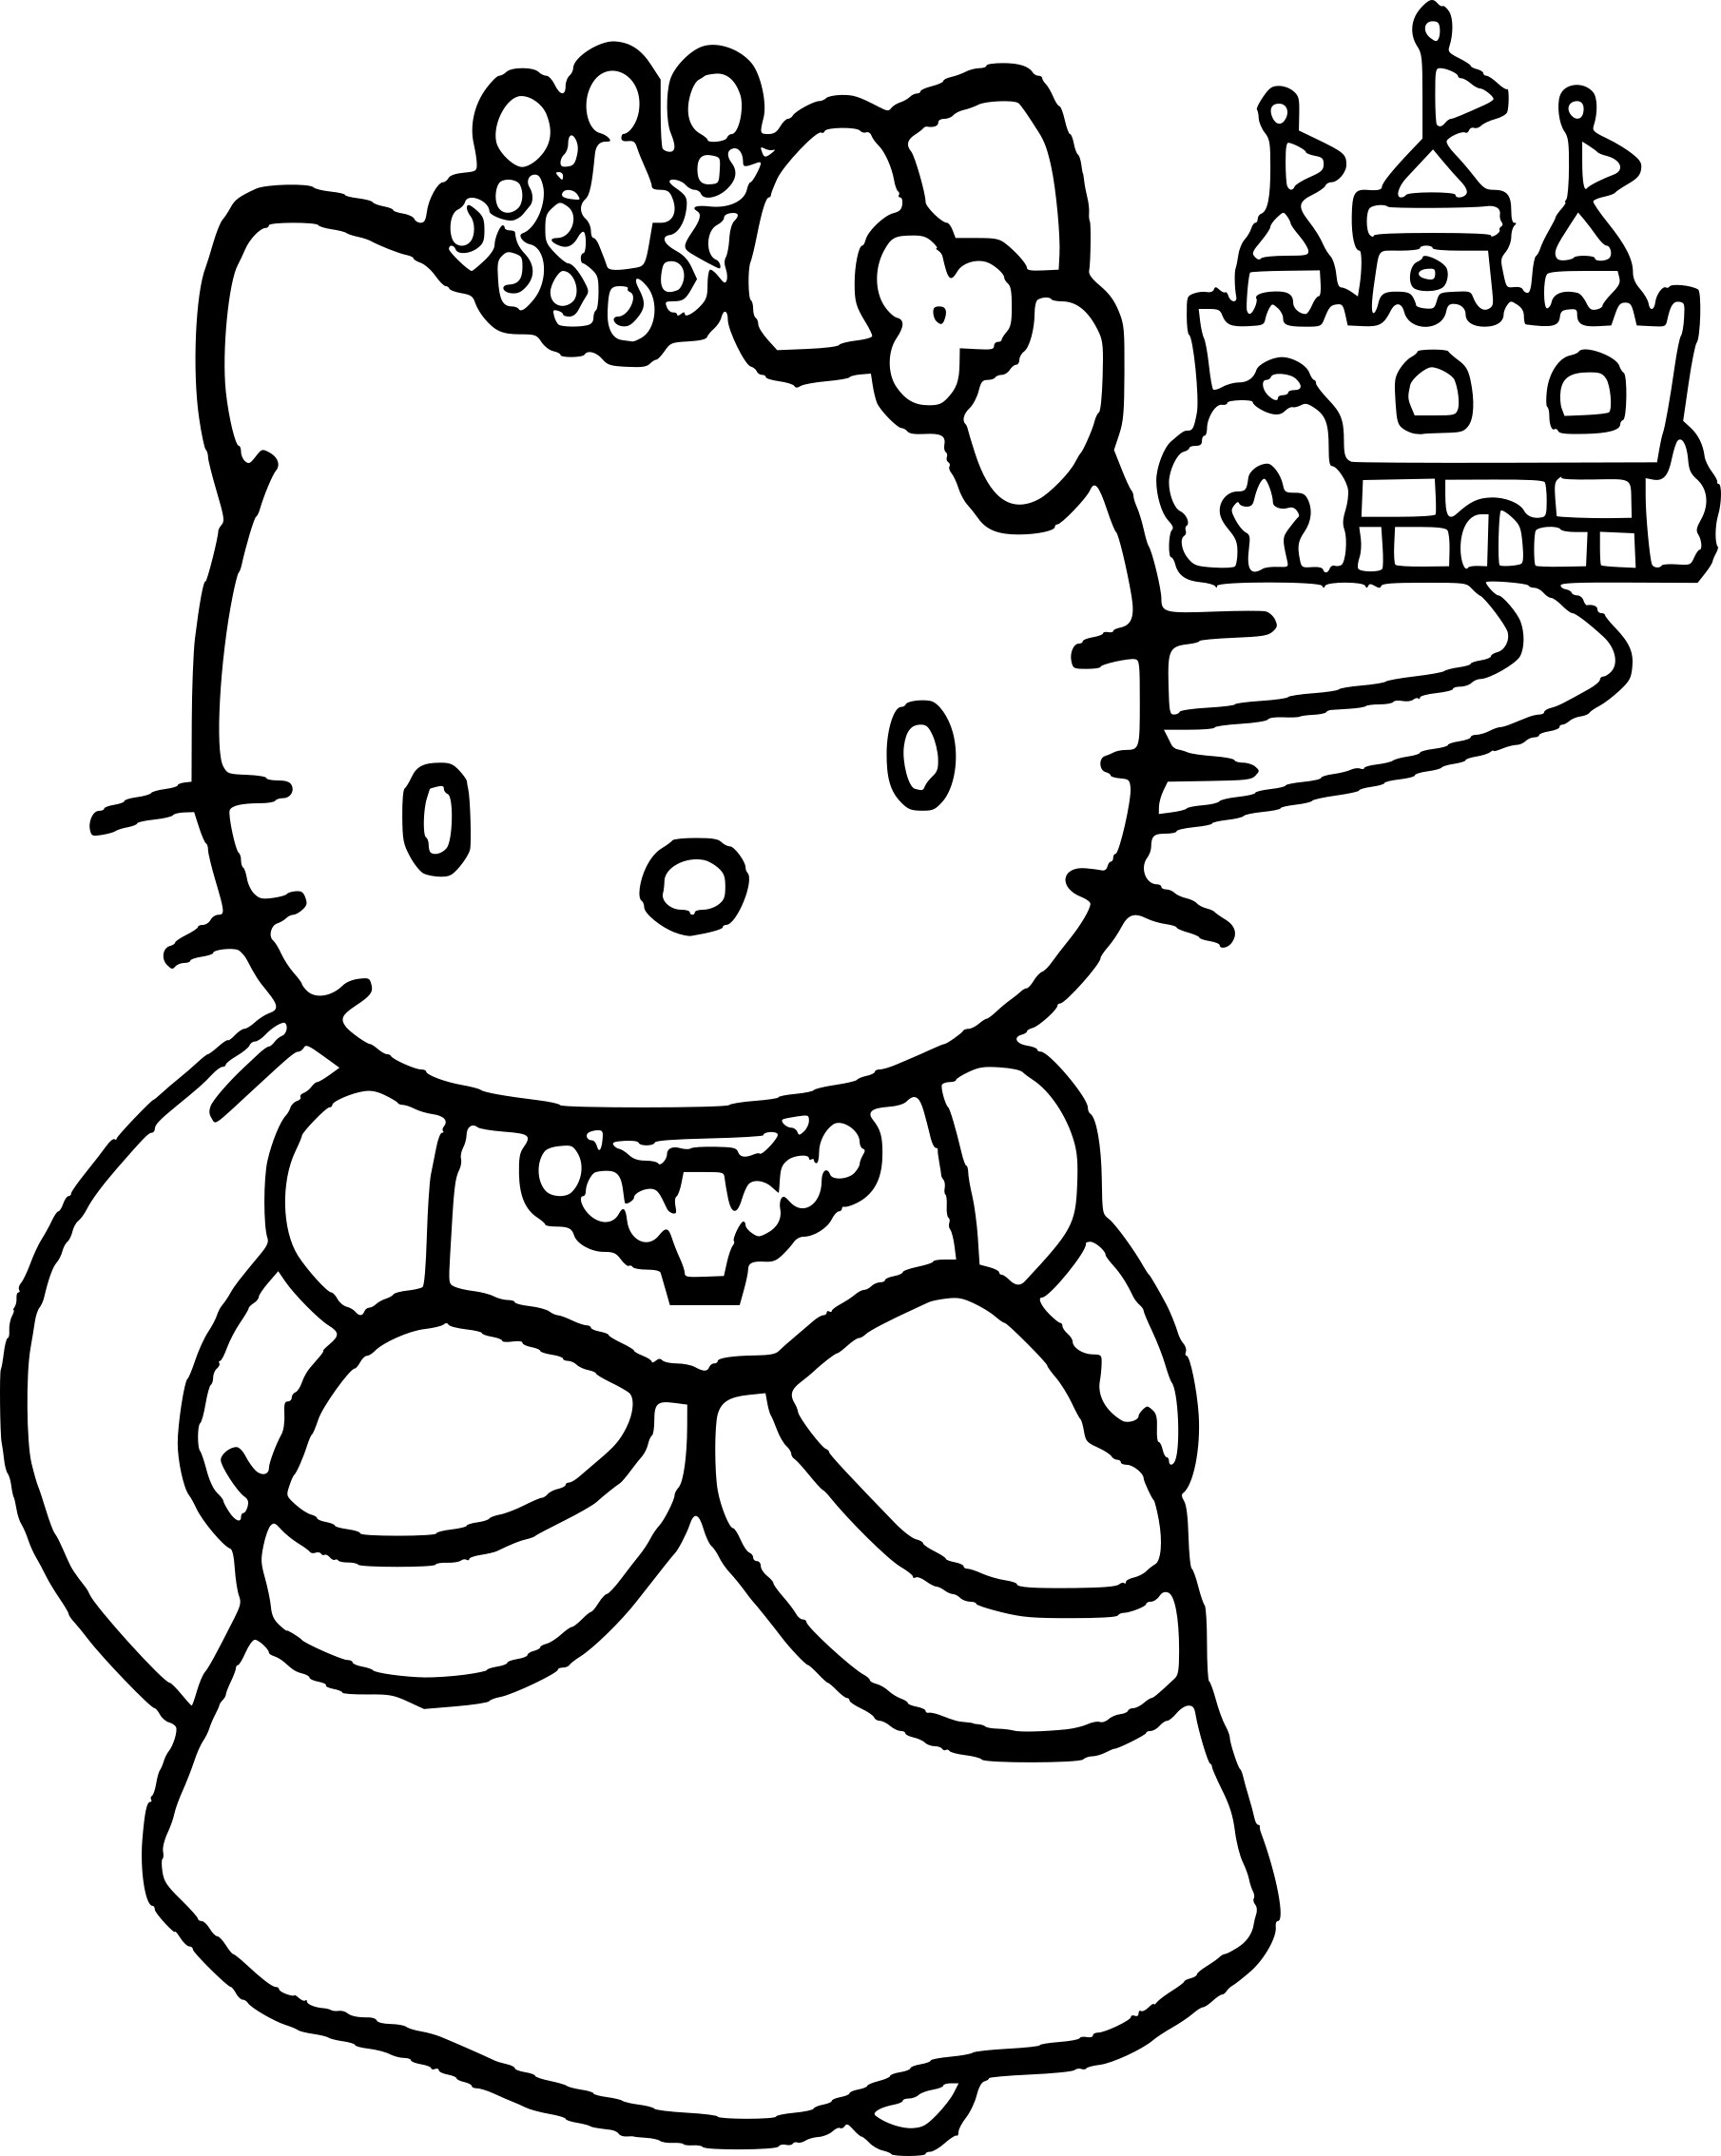 Coloriage hello kitty princesse dessin imprimer sur - Coloriage hello kitty a colorier ...